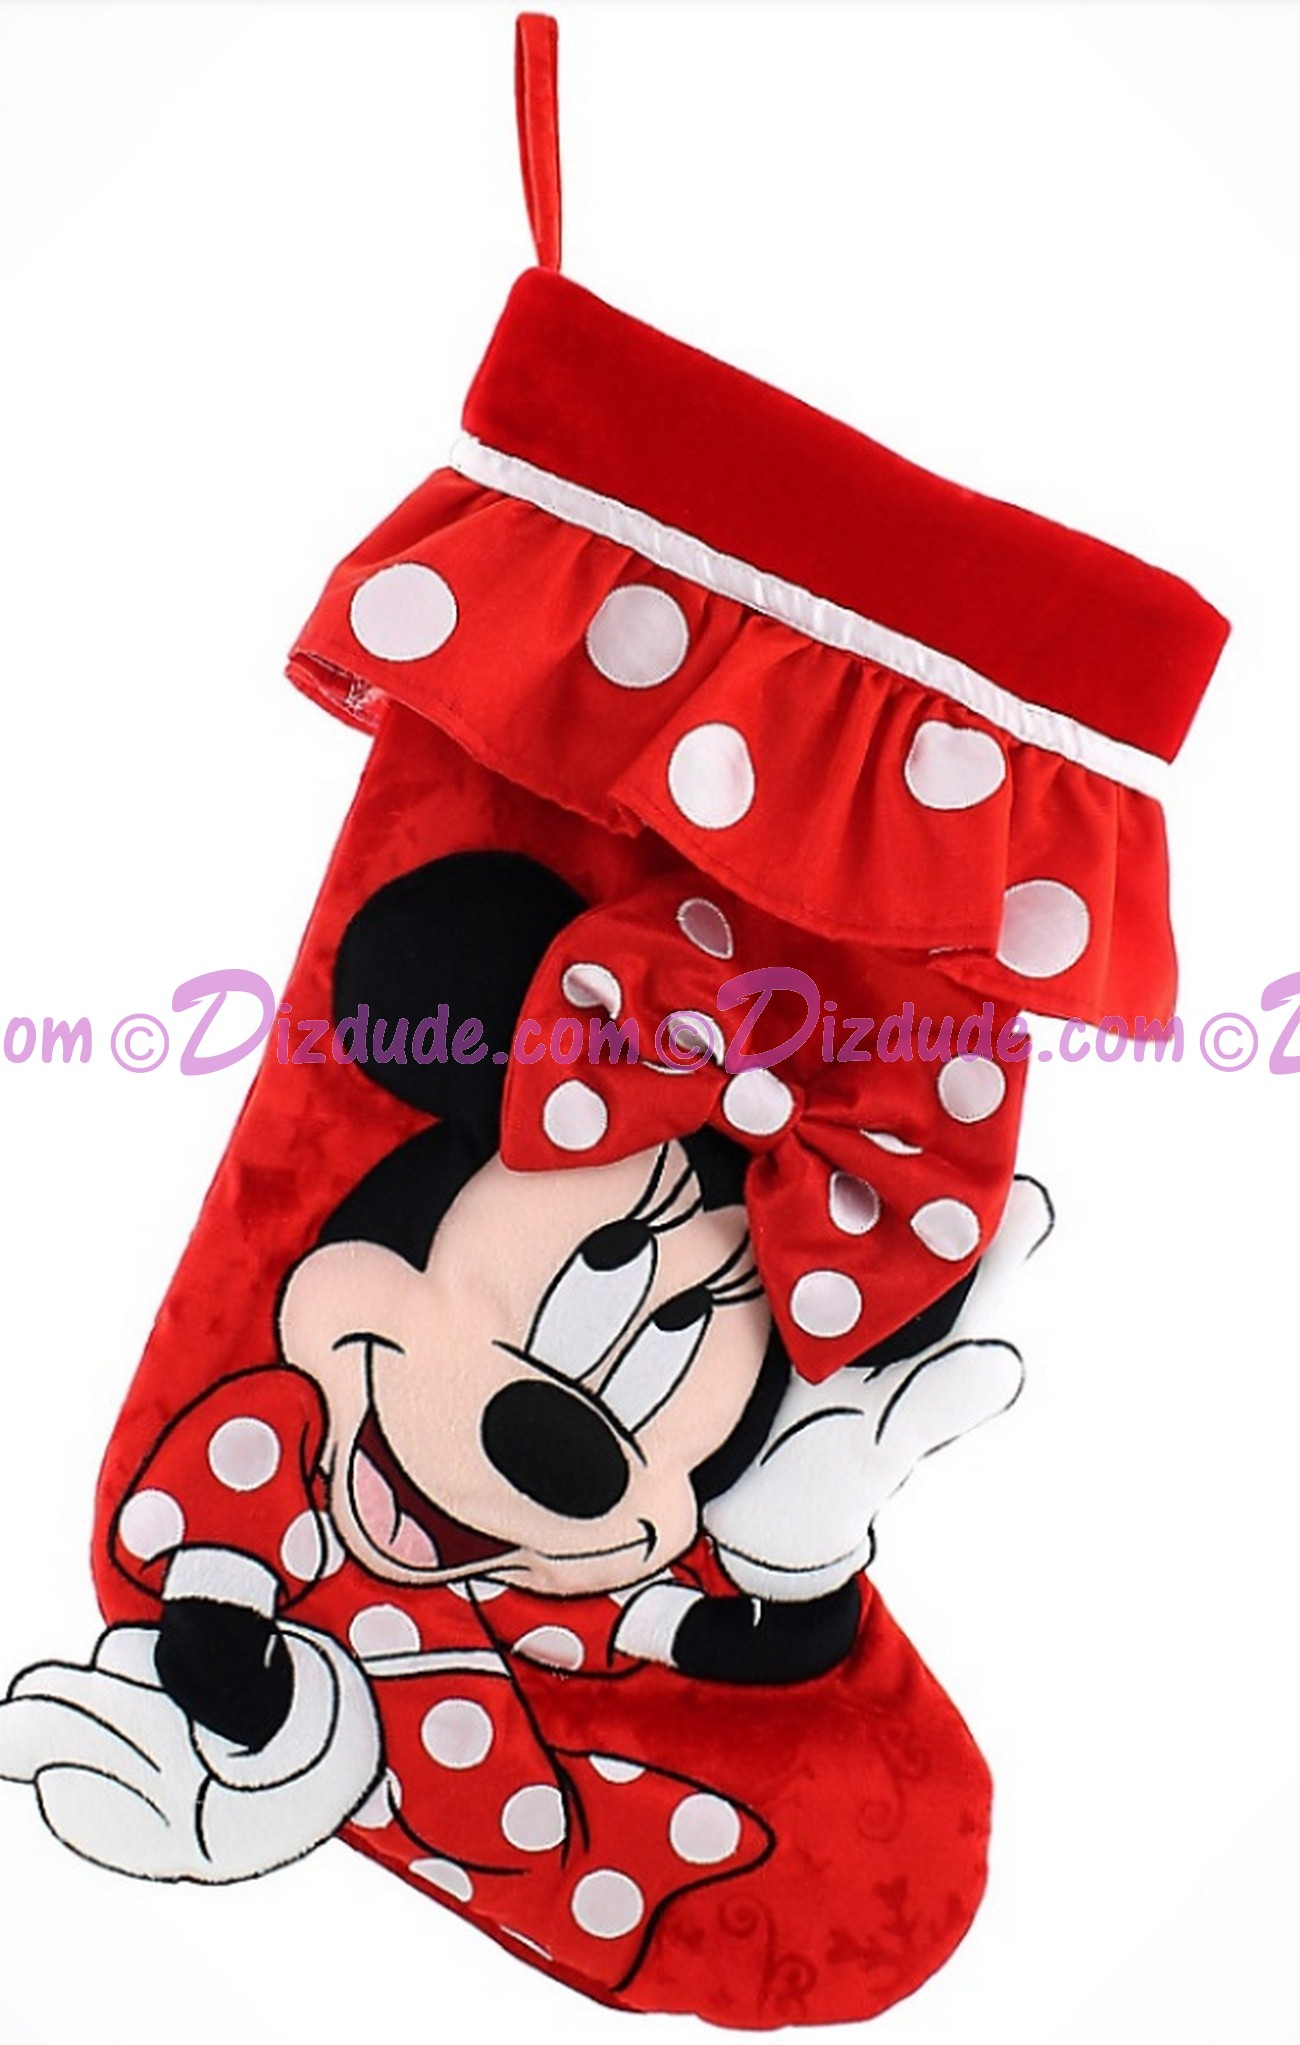 Disney Minnie Mouse Plush Christmas Stocking © Dizdude.com